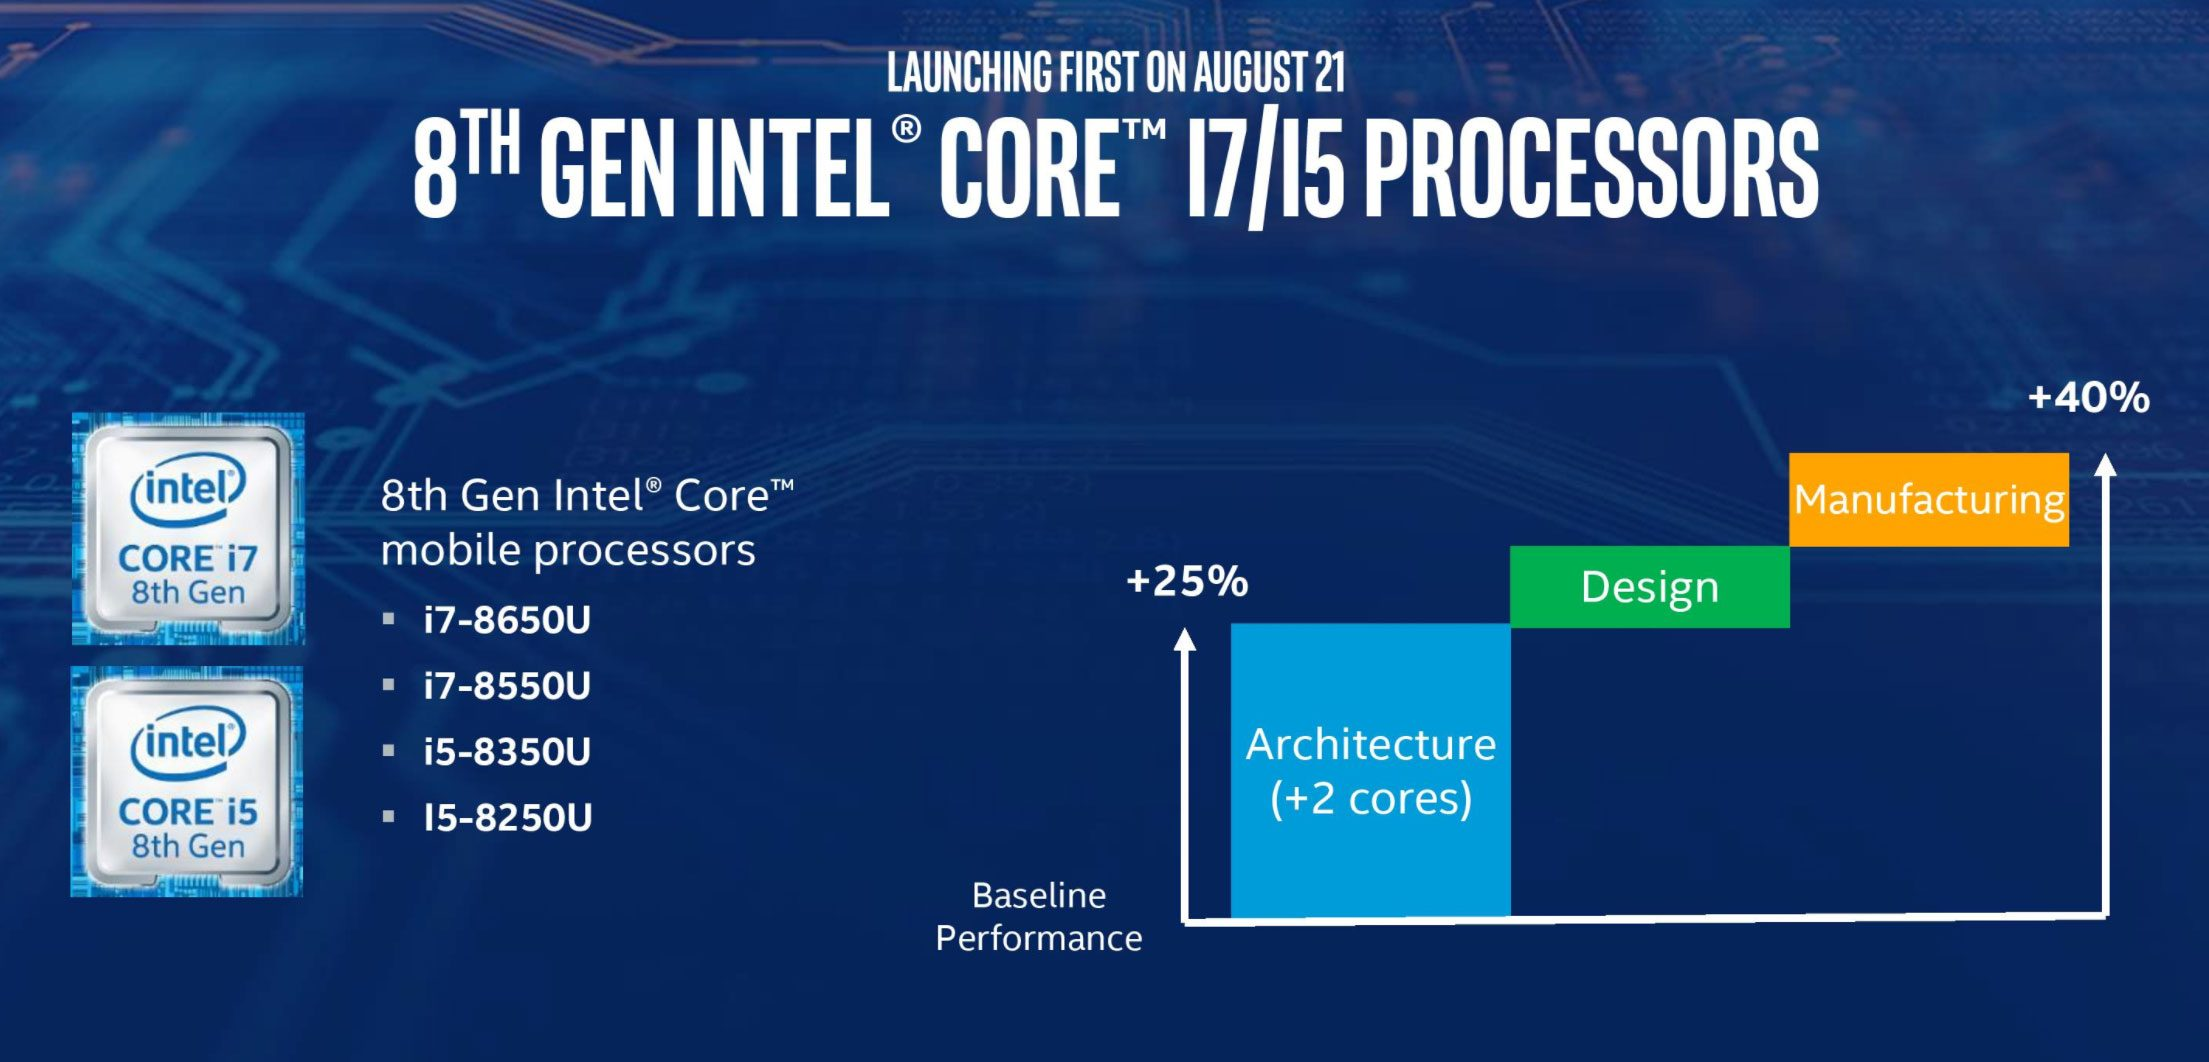 Intel Core i5-8250U (Kaby Lake-R, 8th generation) benchmarks and